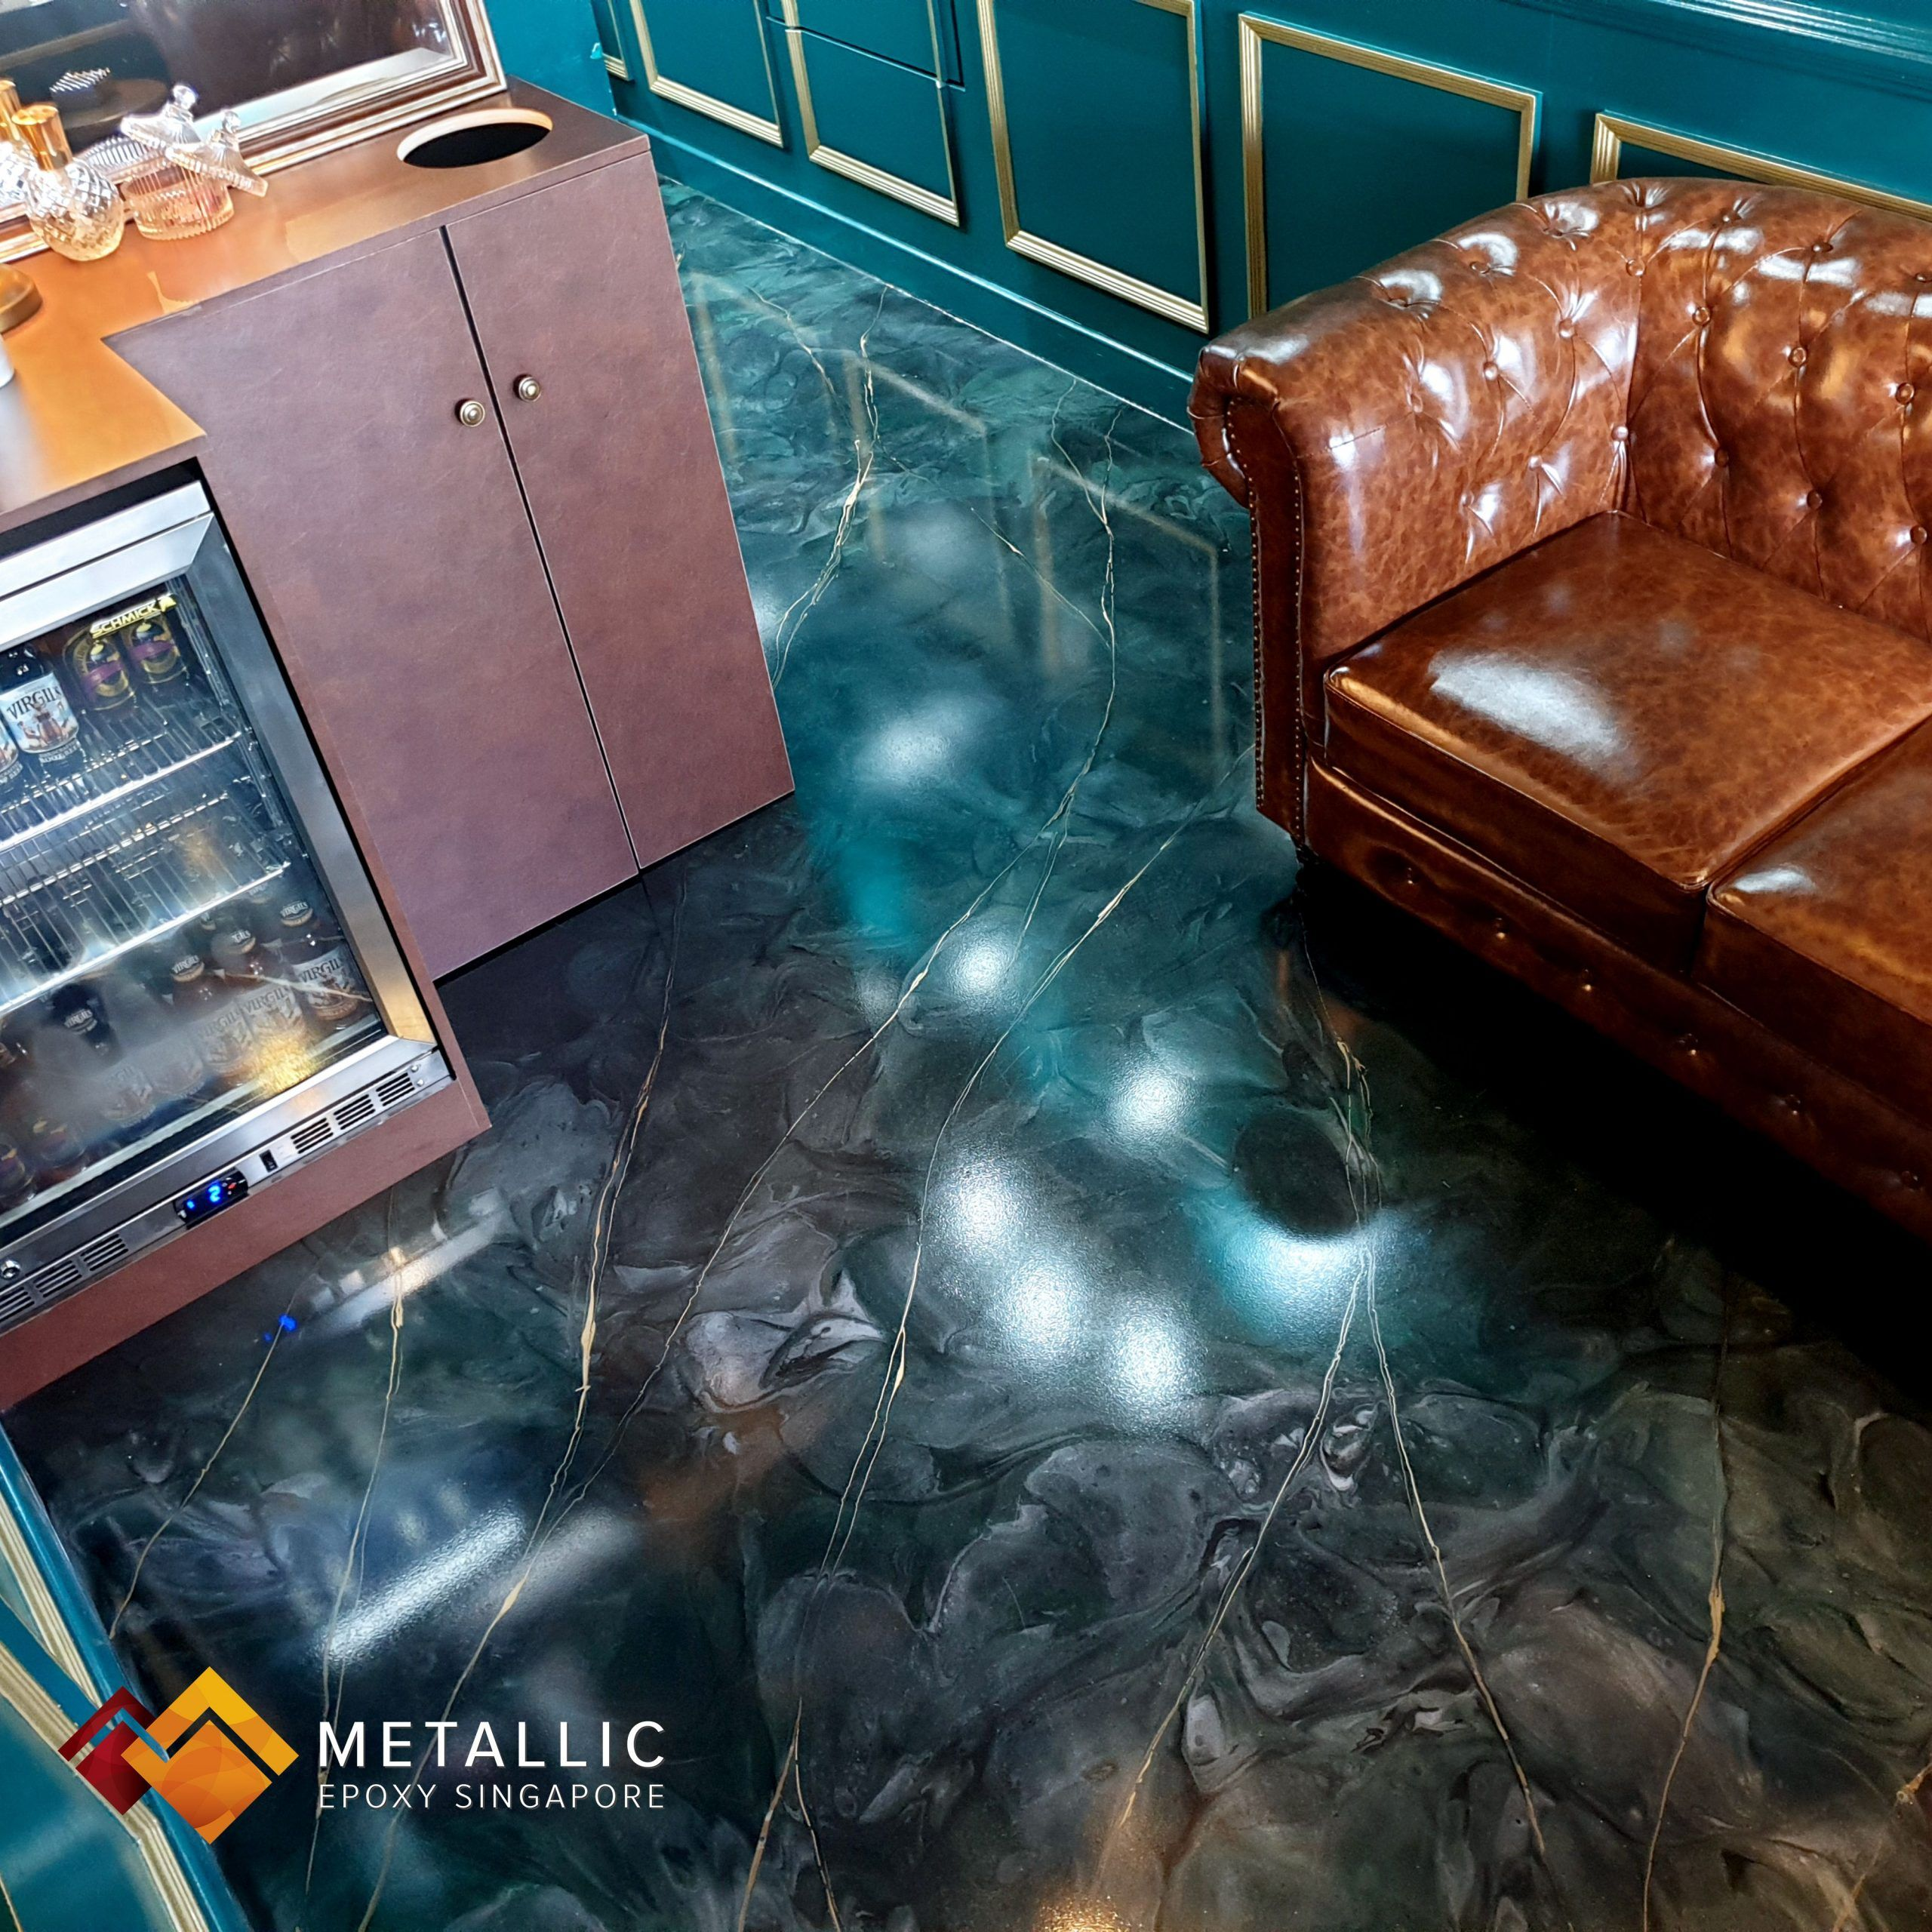 Metallic Epoxy Singapore Moss Green Base with Gold Marble Veins Floor#base #epoxy #floor #gold #green #marble #metallic #moss #singapore #veins